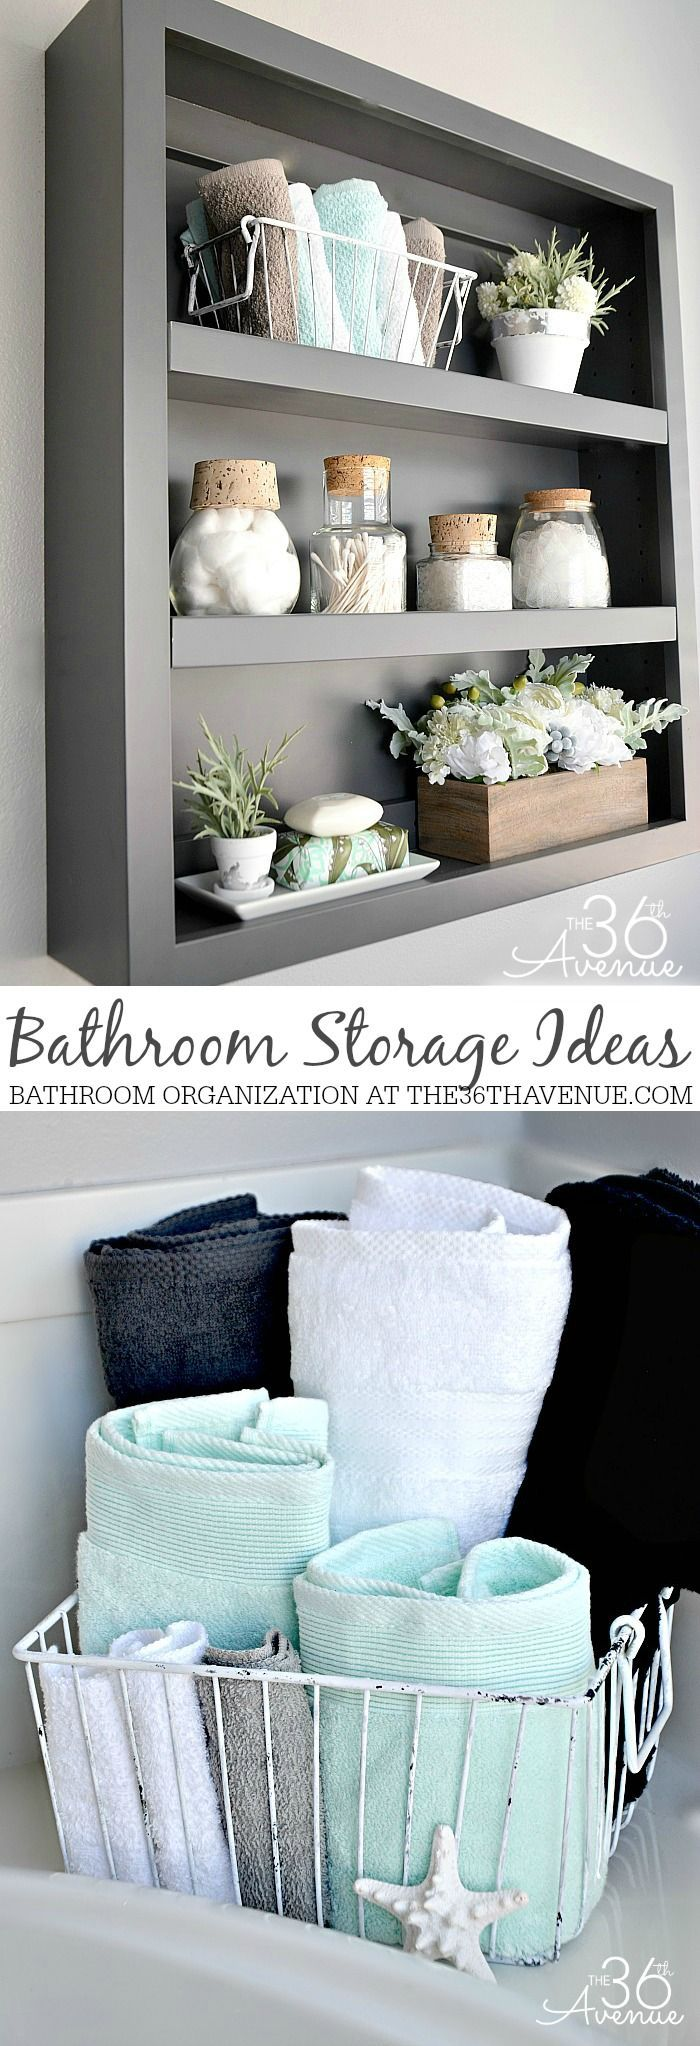 Best Bathroom Accessories Ideas On Pinterest Apartment - Gray bathroom accessories set for bathroom decor ideas